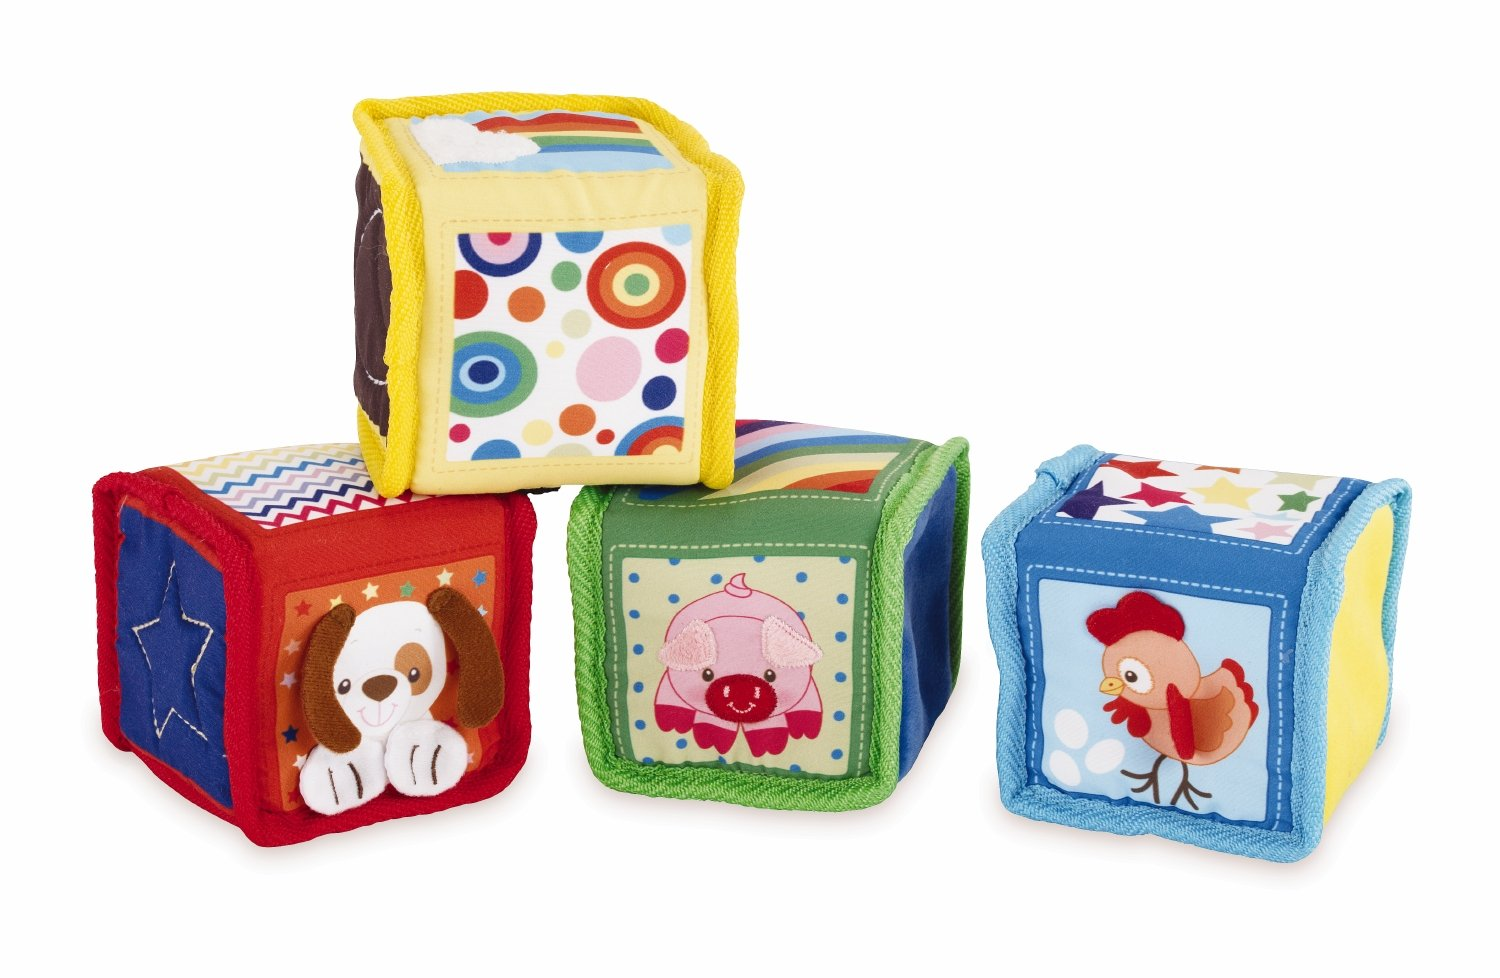 Earlyears Soft Baby Blocks with Pictures Textures, Patterns, and Sounds